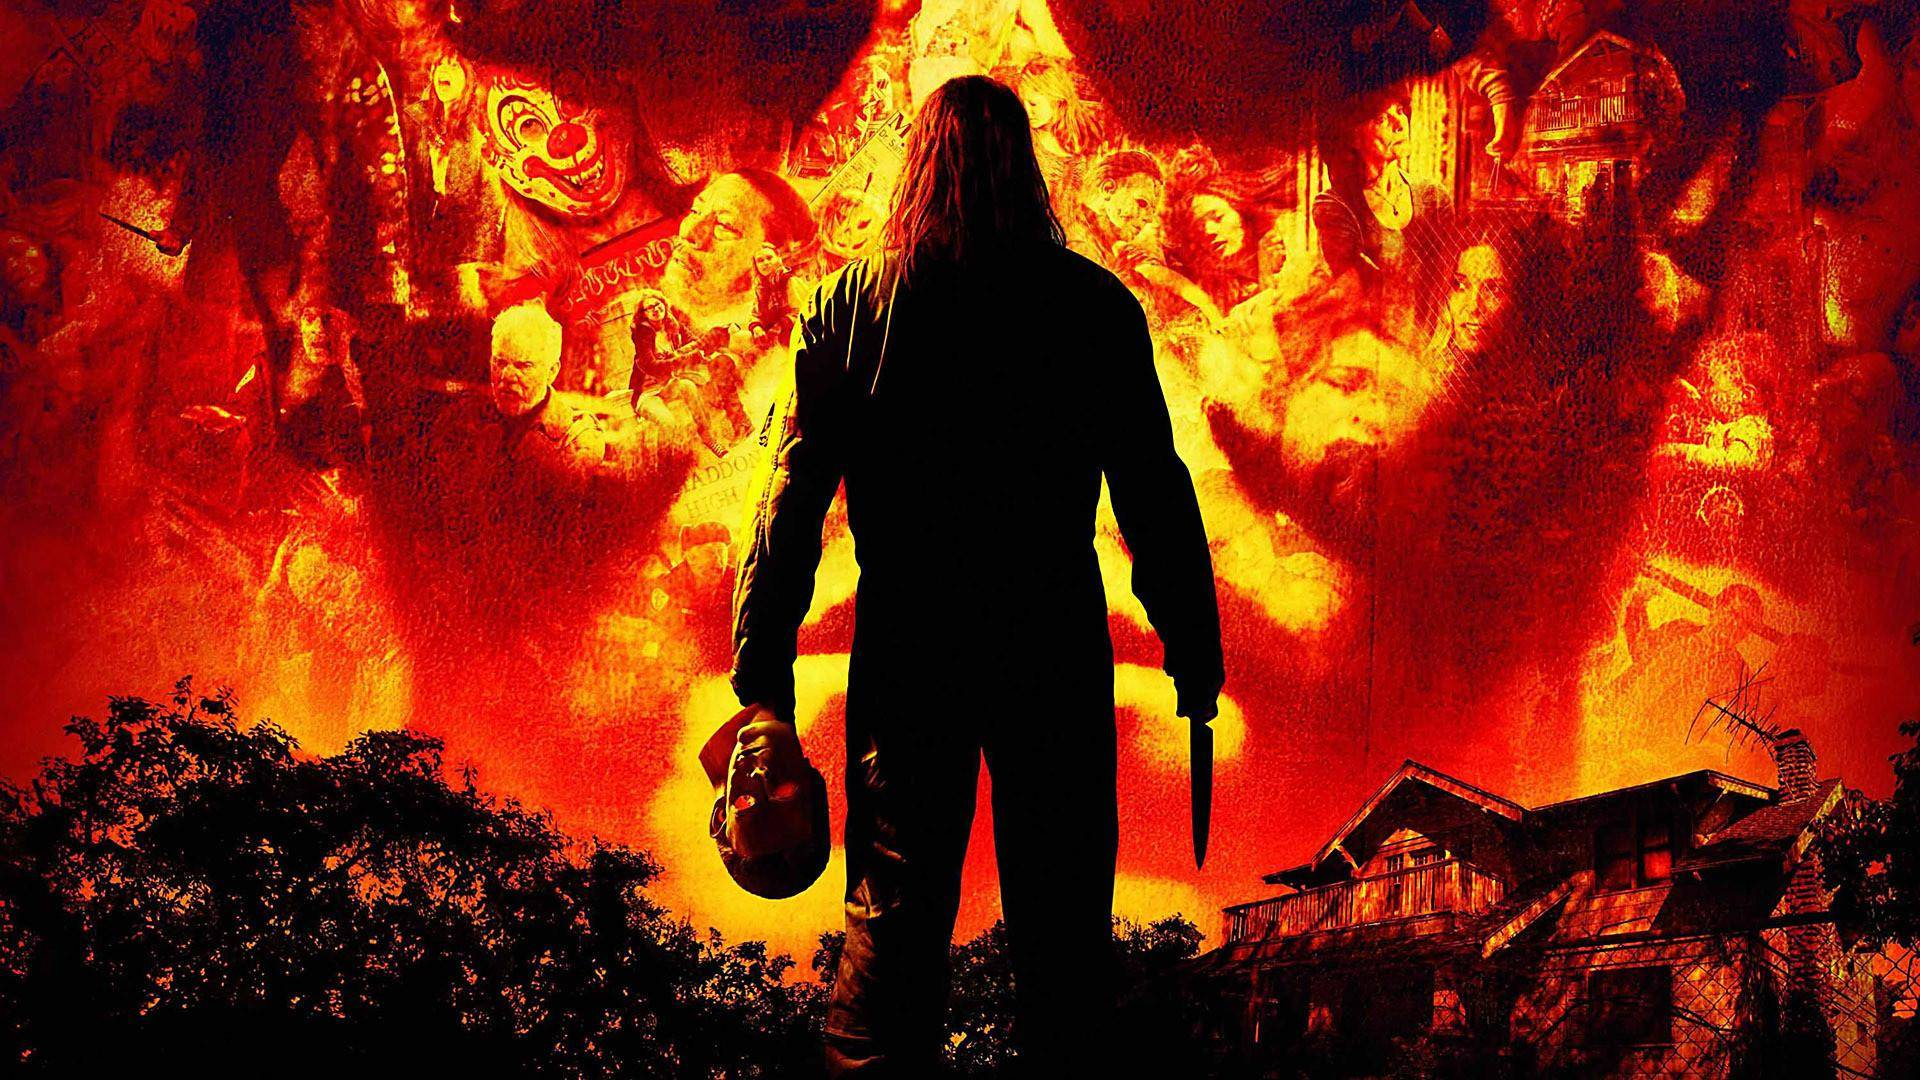 Rob Zombie Halloween 2 Wallpapers